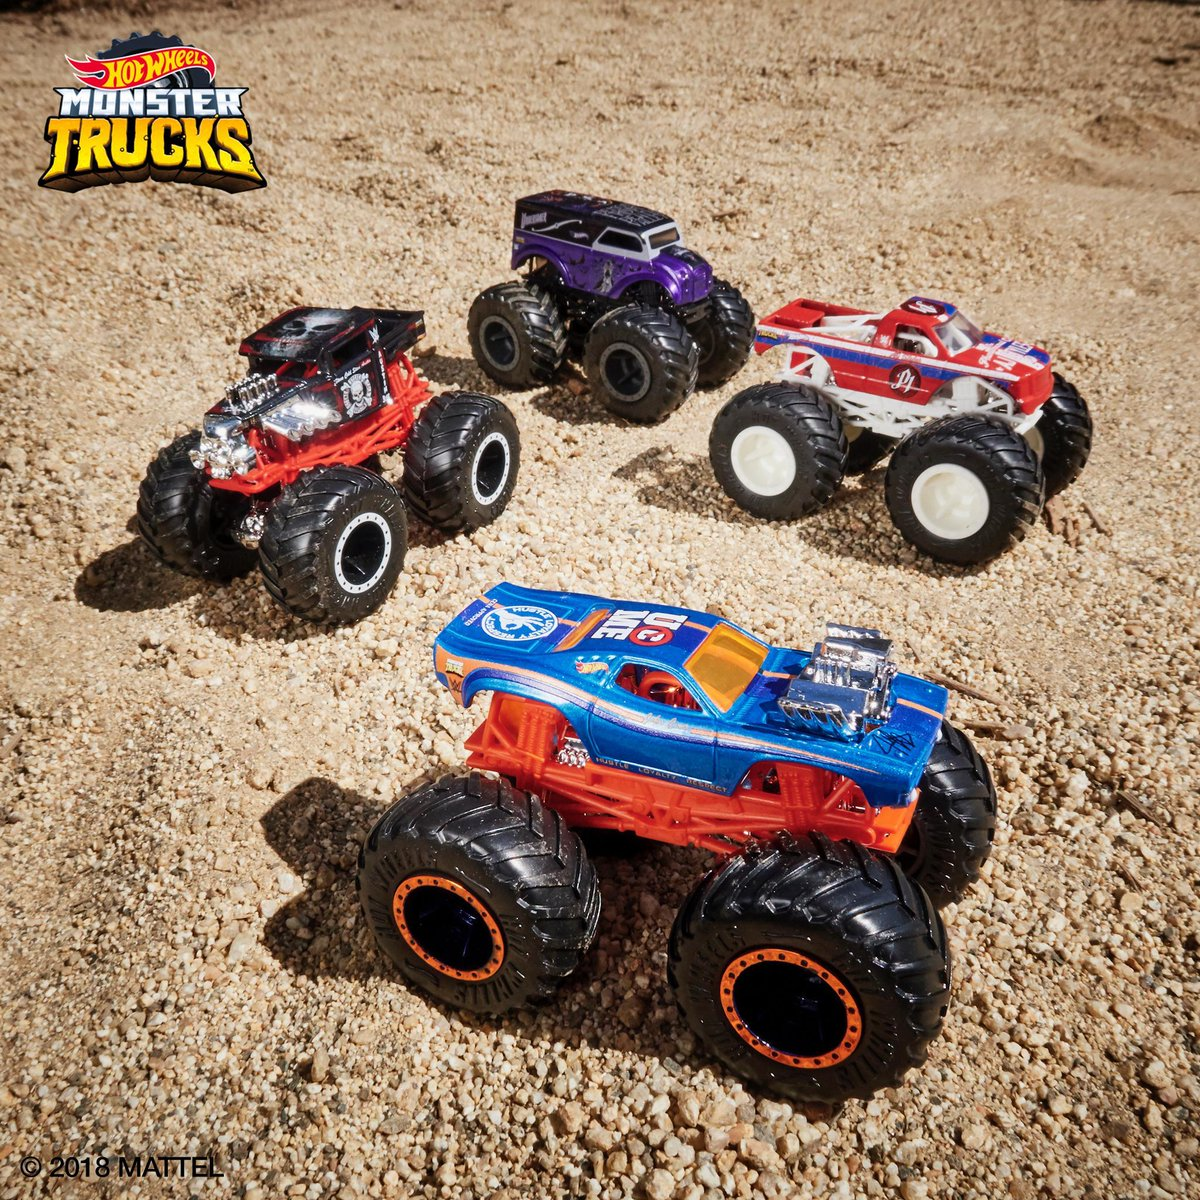 Hot Wheels On Twitter Check Out These Epic Wwe Monstertrucks We Revealed This Weekend At San Diego Comic Con And That S The Bottom Line Hotwheelssdcc Comiccon2018 Https T Co Wmqiero7xu